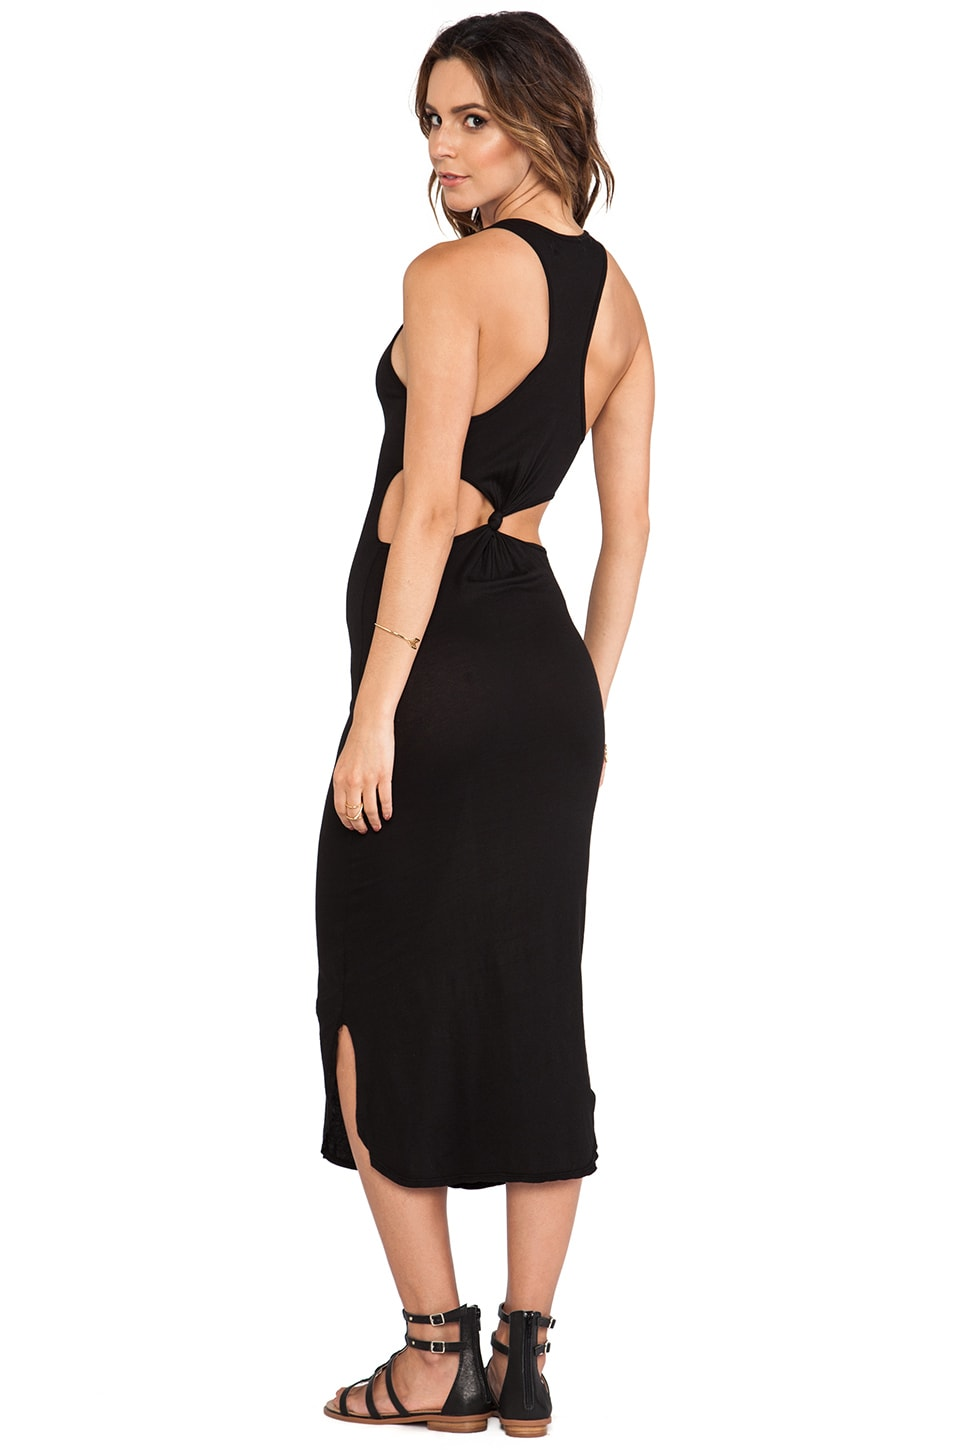 291 Back Knot Cut-Out Maxi Dress in Vintage Black